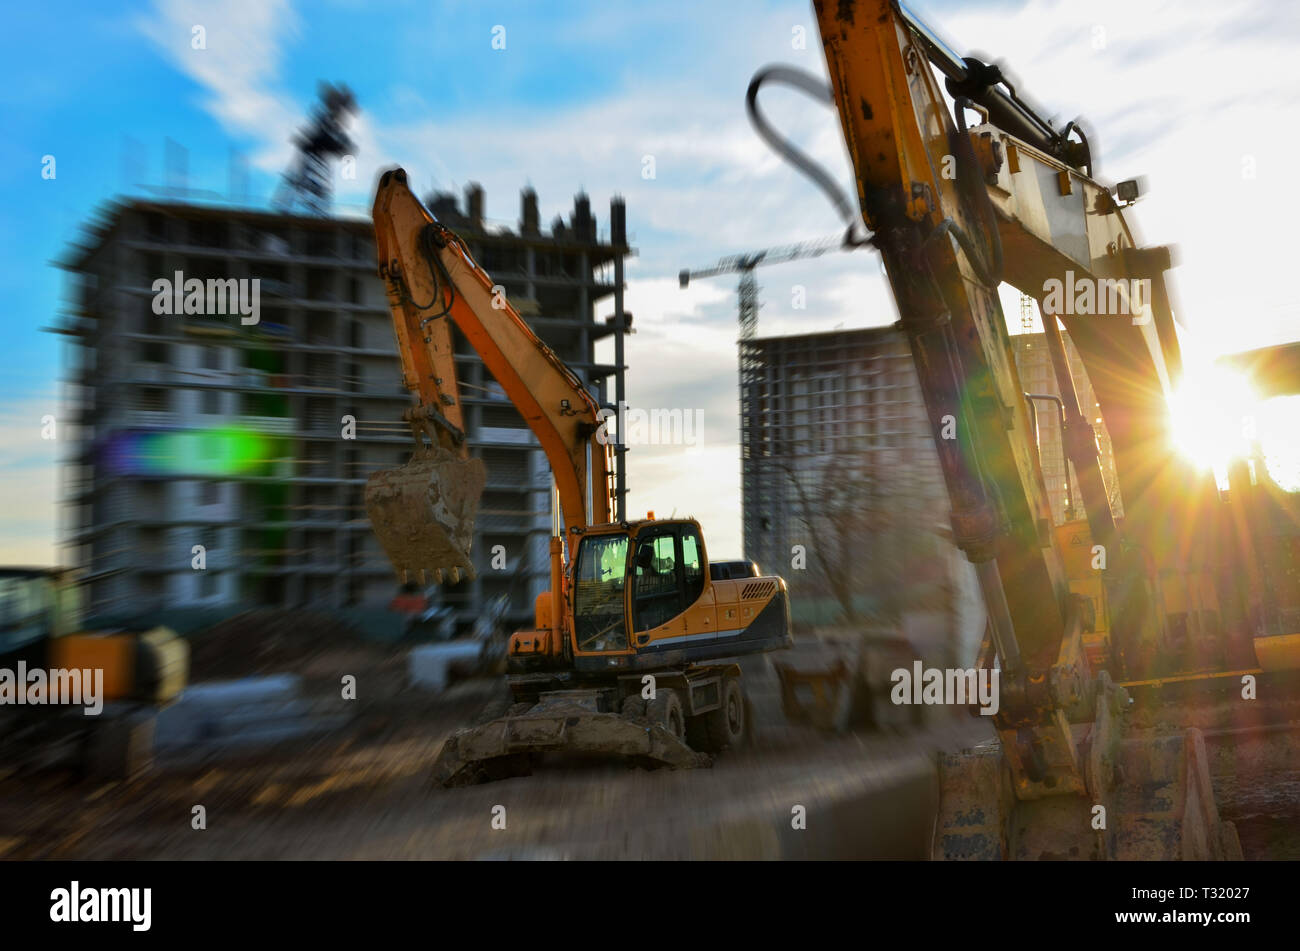 Industrial equipment, earthmoving excavators and construction crane at sunset, sunrise. Blur effect. Under construction site - Image - Stock Image